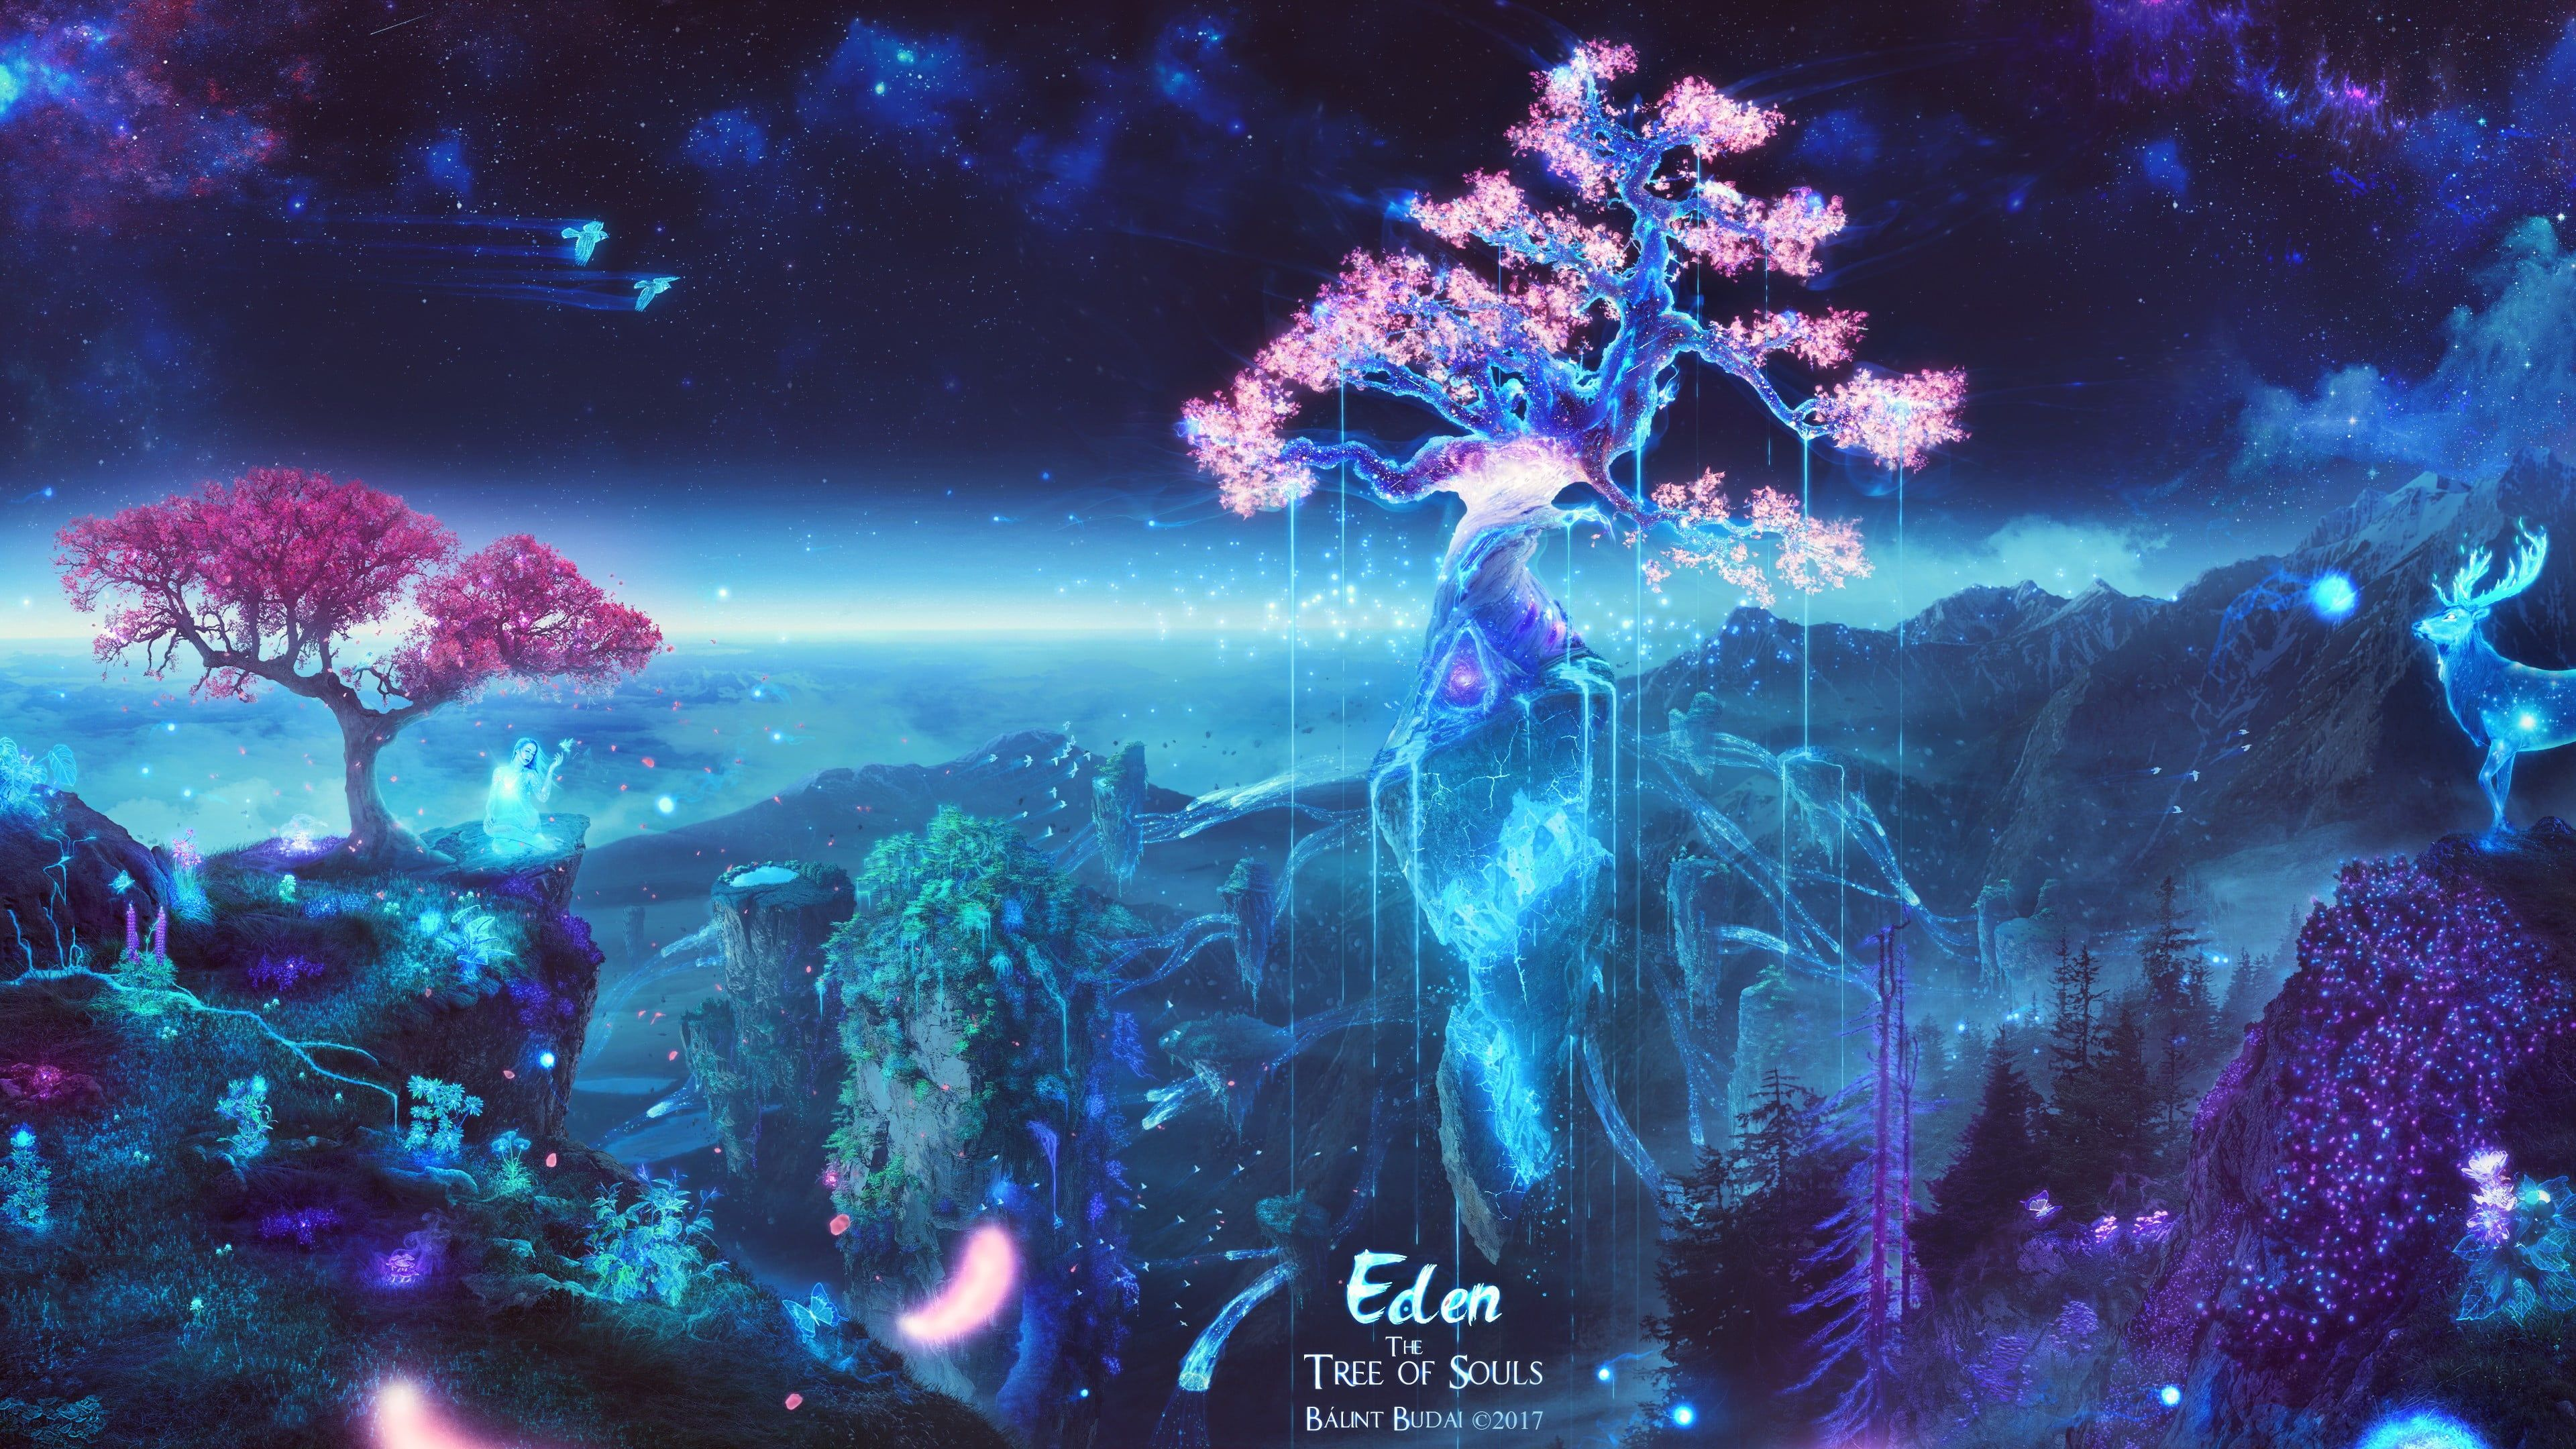 Eden Tree Illustration Photo Of Pink Cherry Blossoms Trees Space Galaxy Souls Sakura Tree Deer Butterf In 2020 Sakura Tree Tree Hd Wallpaper Tree Illustration